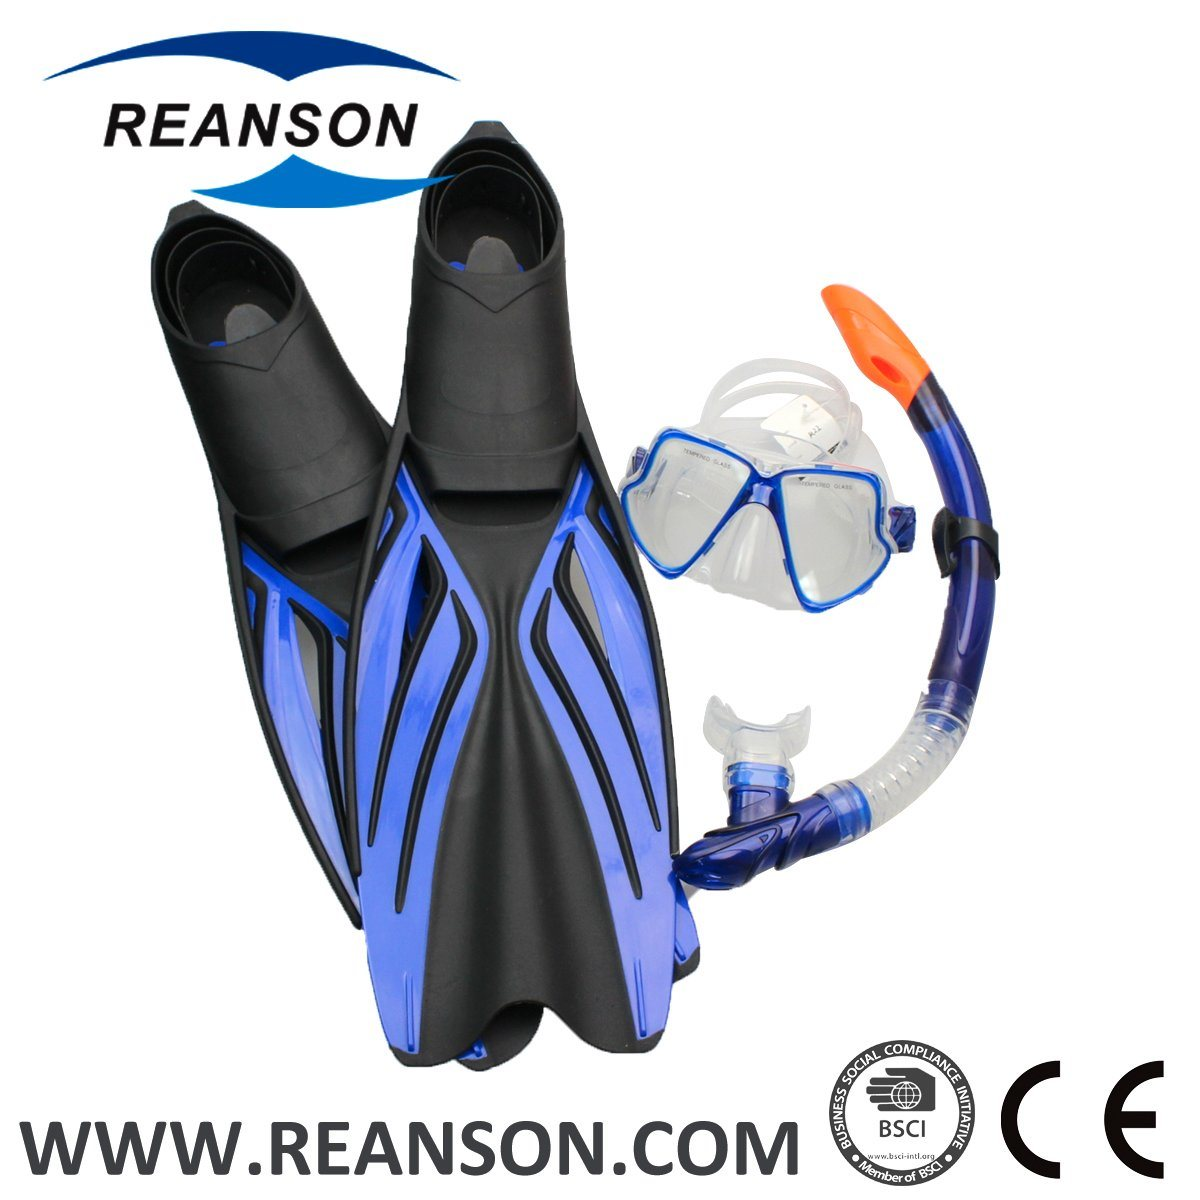 Reanson High Quality Silicone Diving Mask Fins Snorkel Set